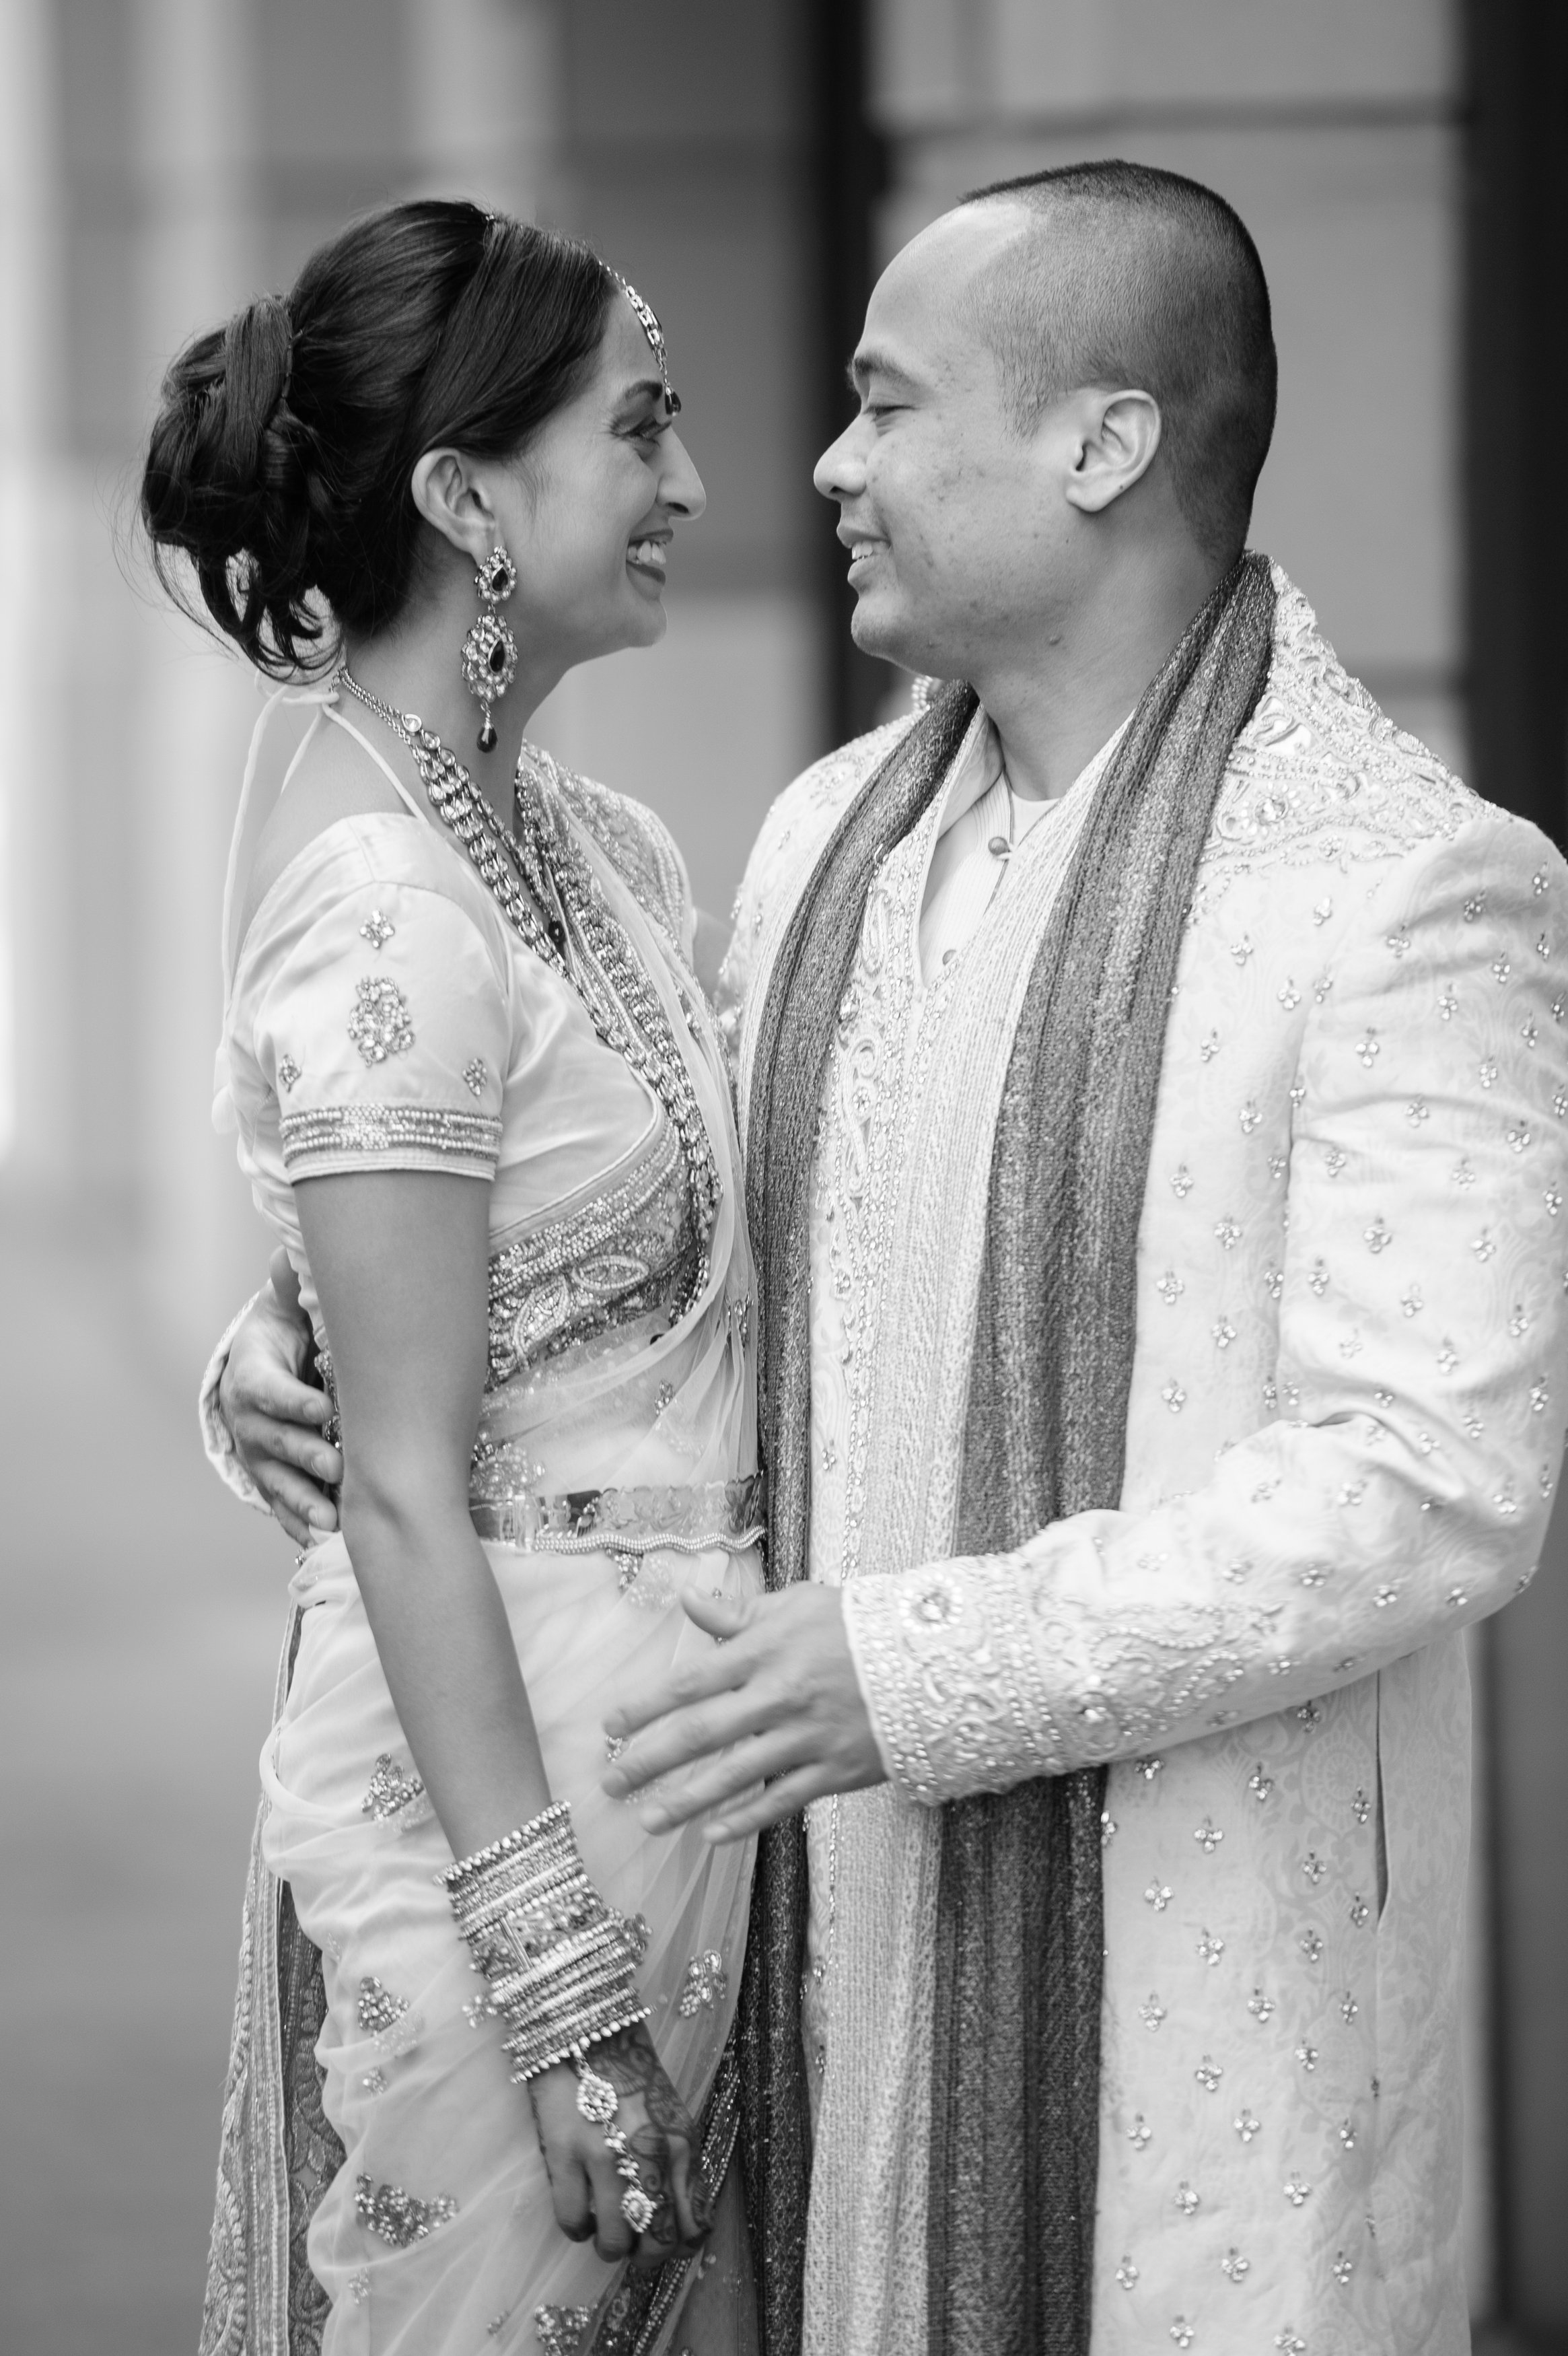 AnaisEvents_JihanCerdaPhotography_Priya-and-Jason - 022.jpg